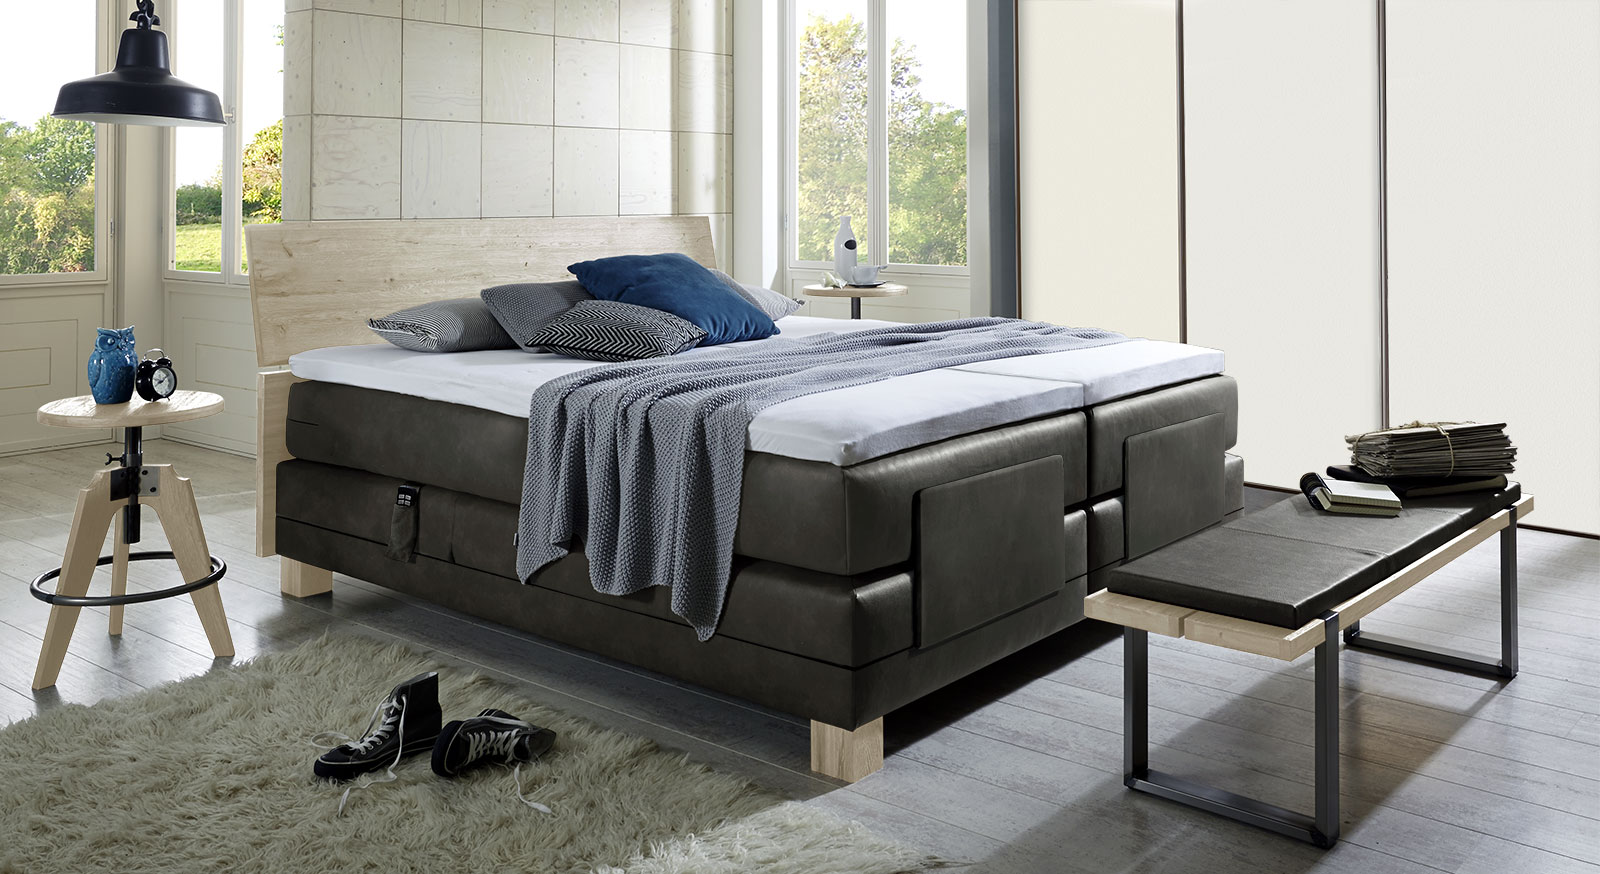 elektrisches boxspringbett in 200x200 cm avila elektro. Black Bedroom Furniture Sets. Home Design Ideas